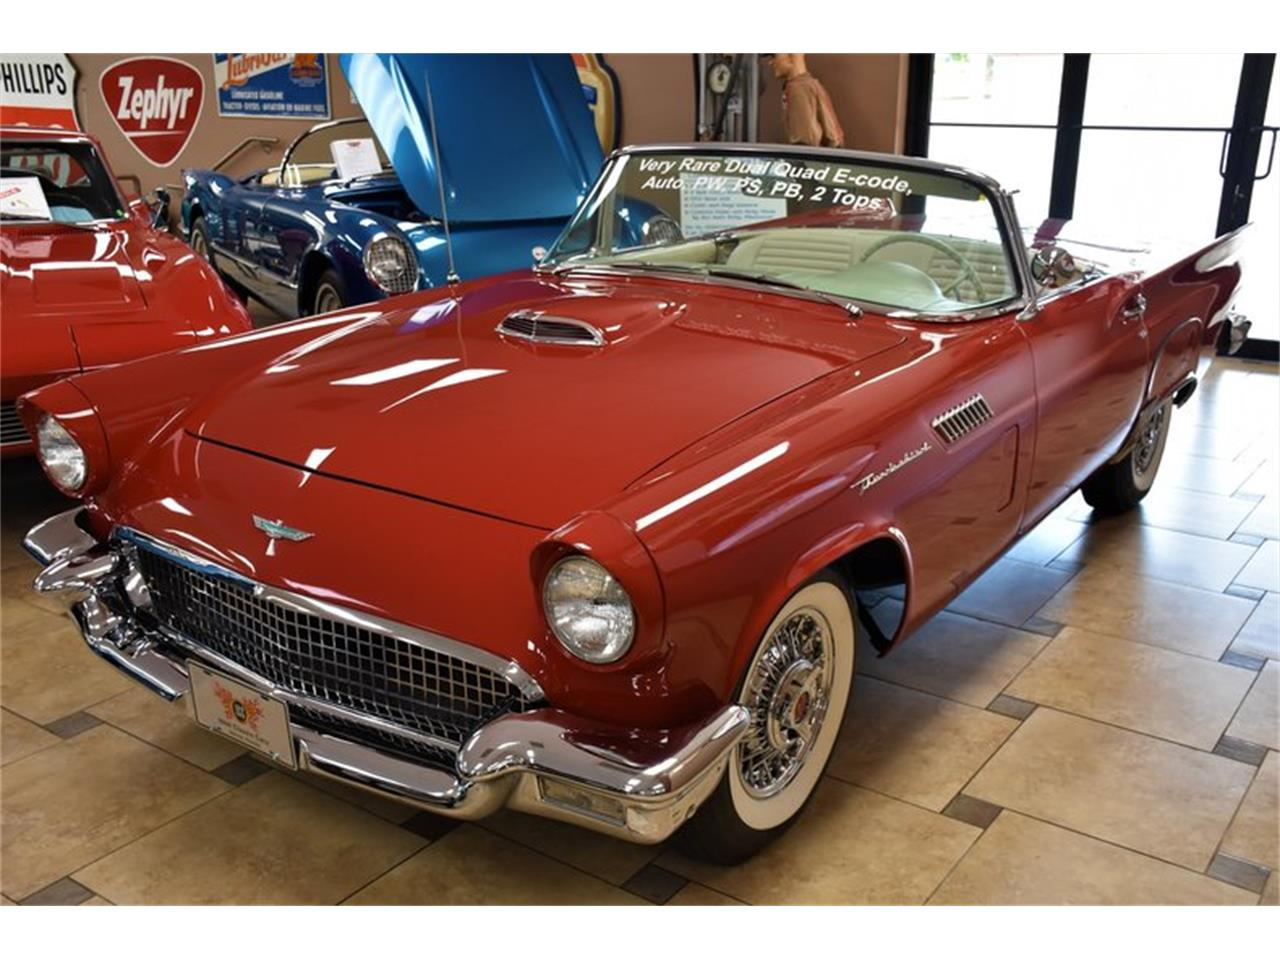 Ford Thunderbird Cars for sale | eBay